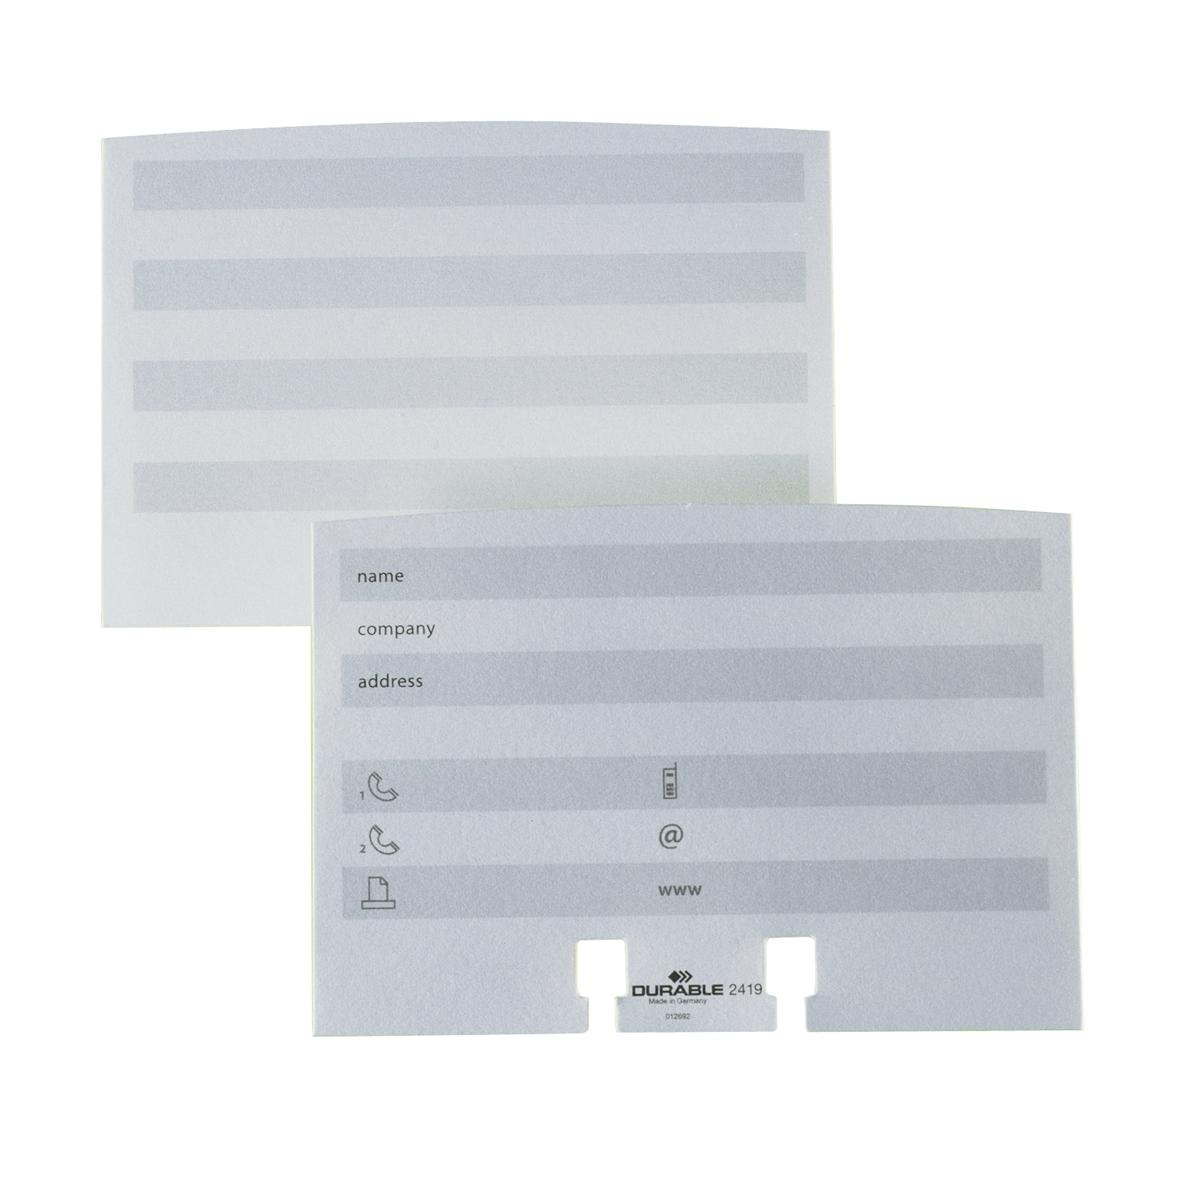 Image for Durable Refill Cards for Visifix White Ref 2419/02 [Pack 100]